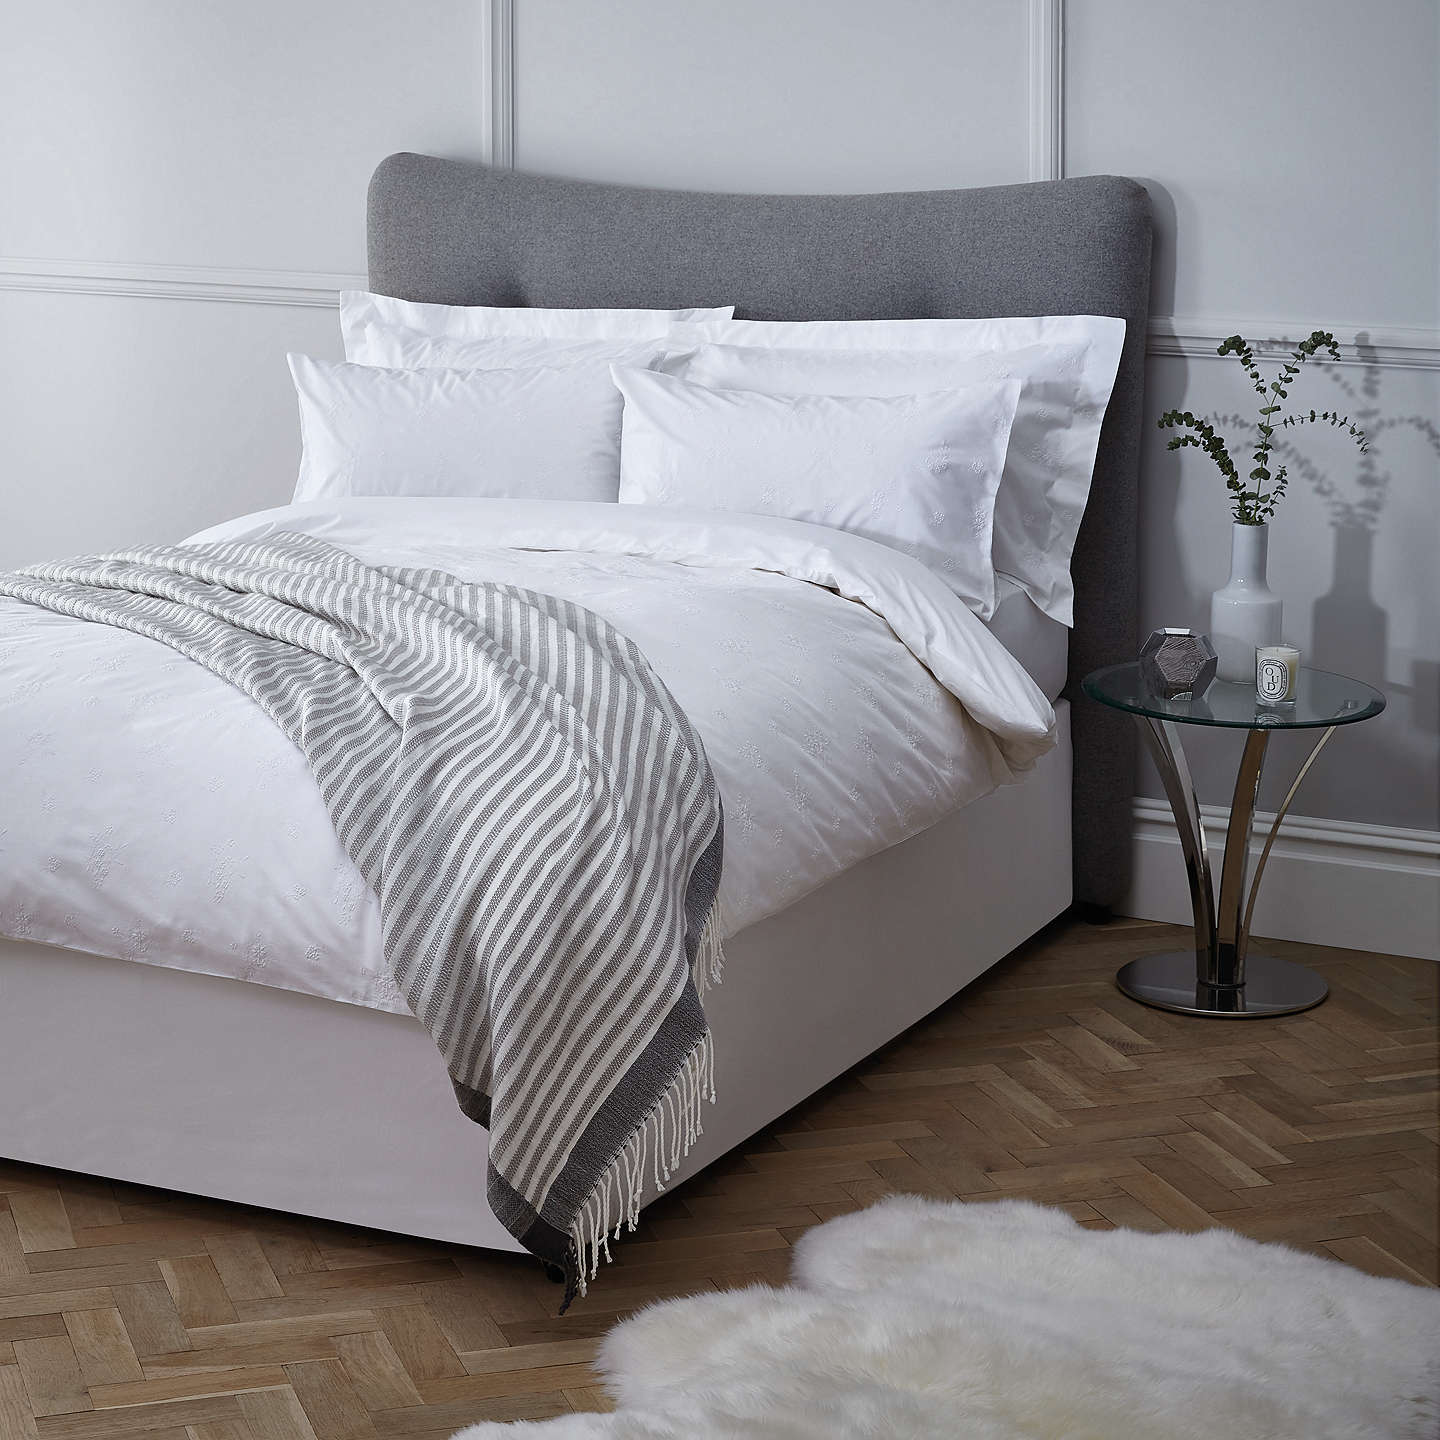 John Lewis Bedding Sets White